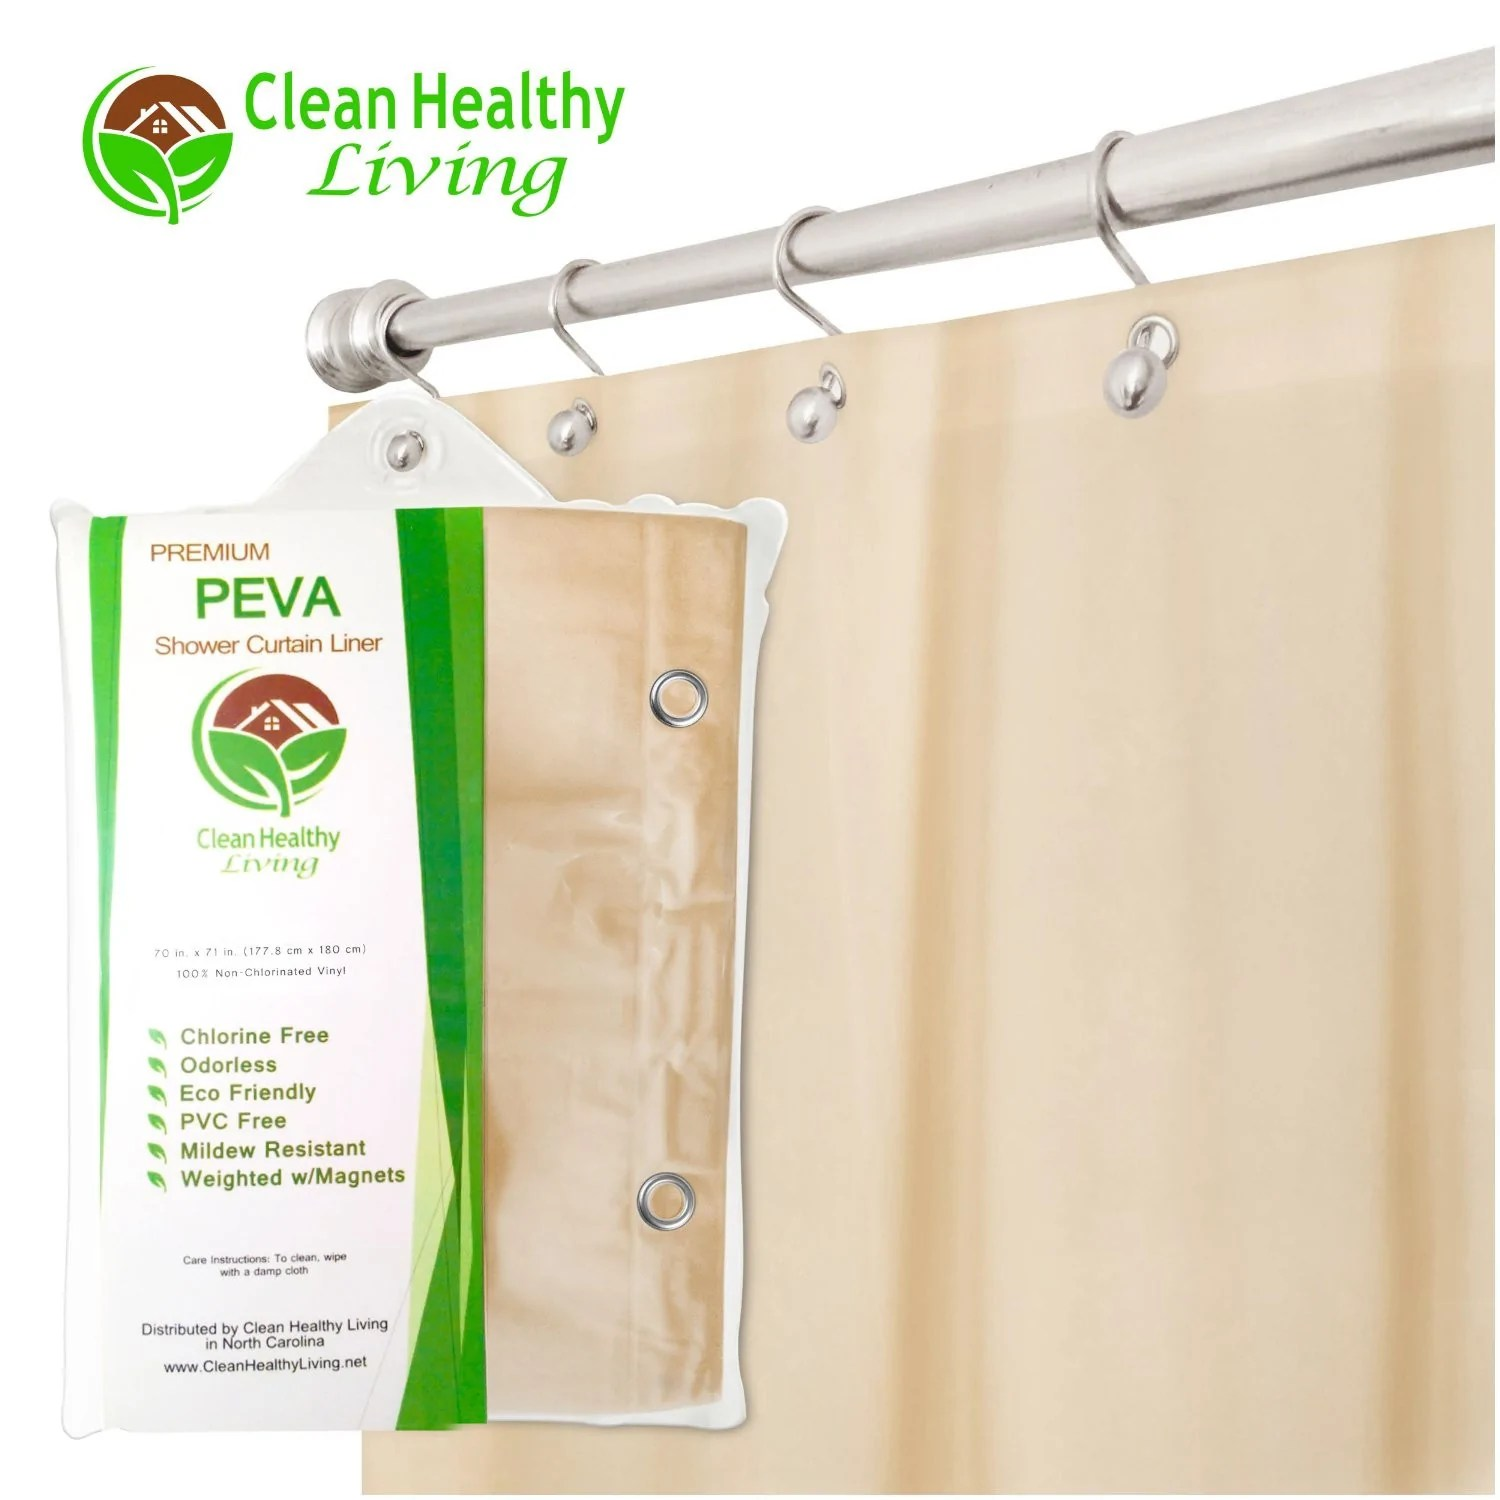 clean healthy living premium peva taupe shower curtain liner with magnets suction cups 70 x 71 inches long